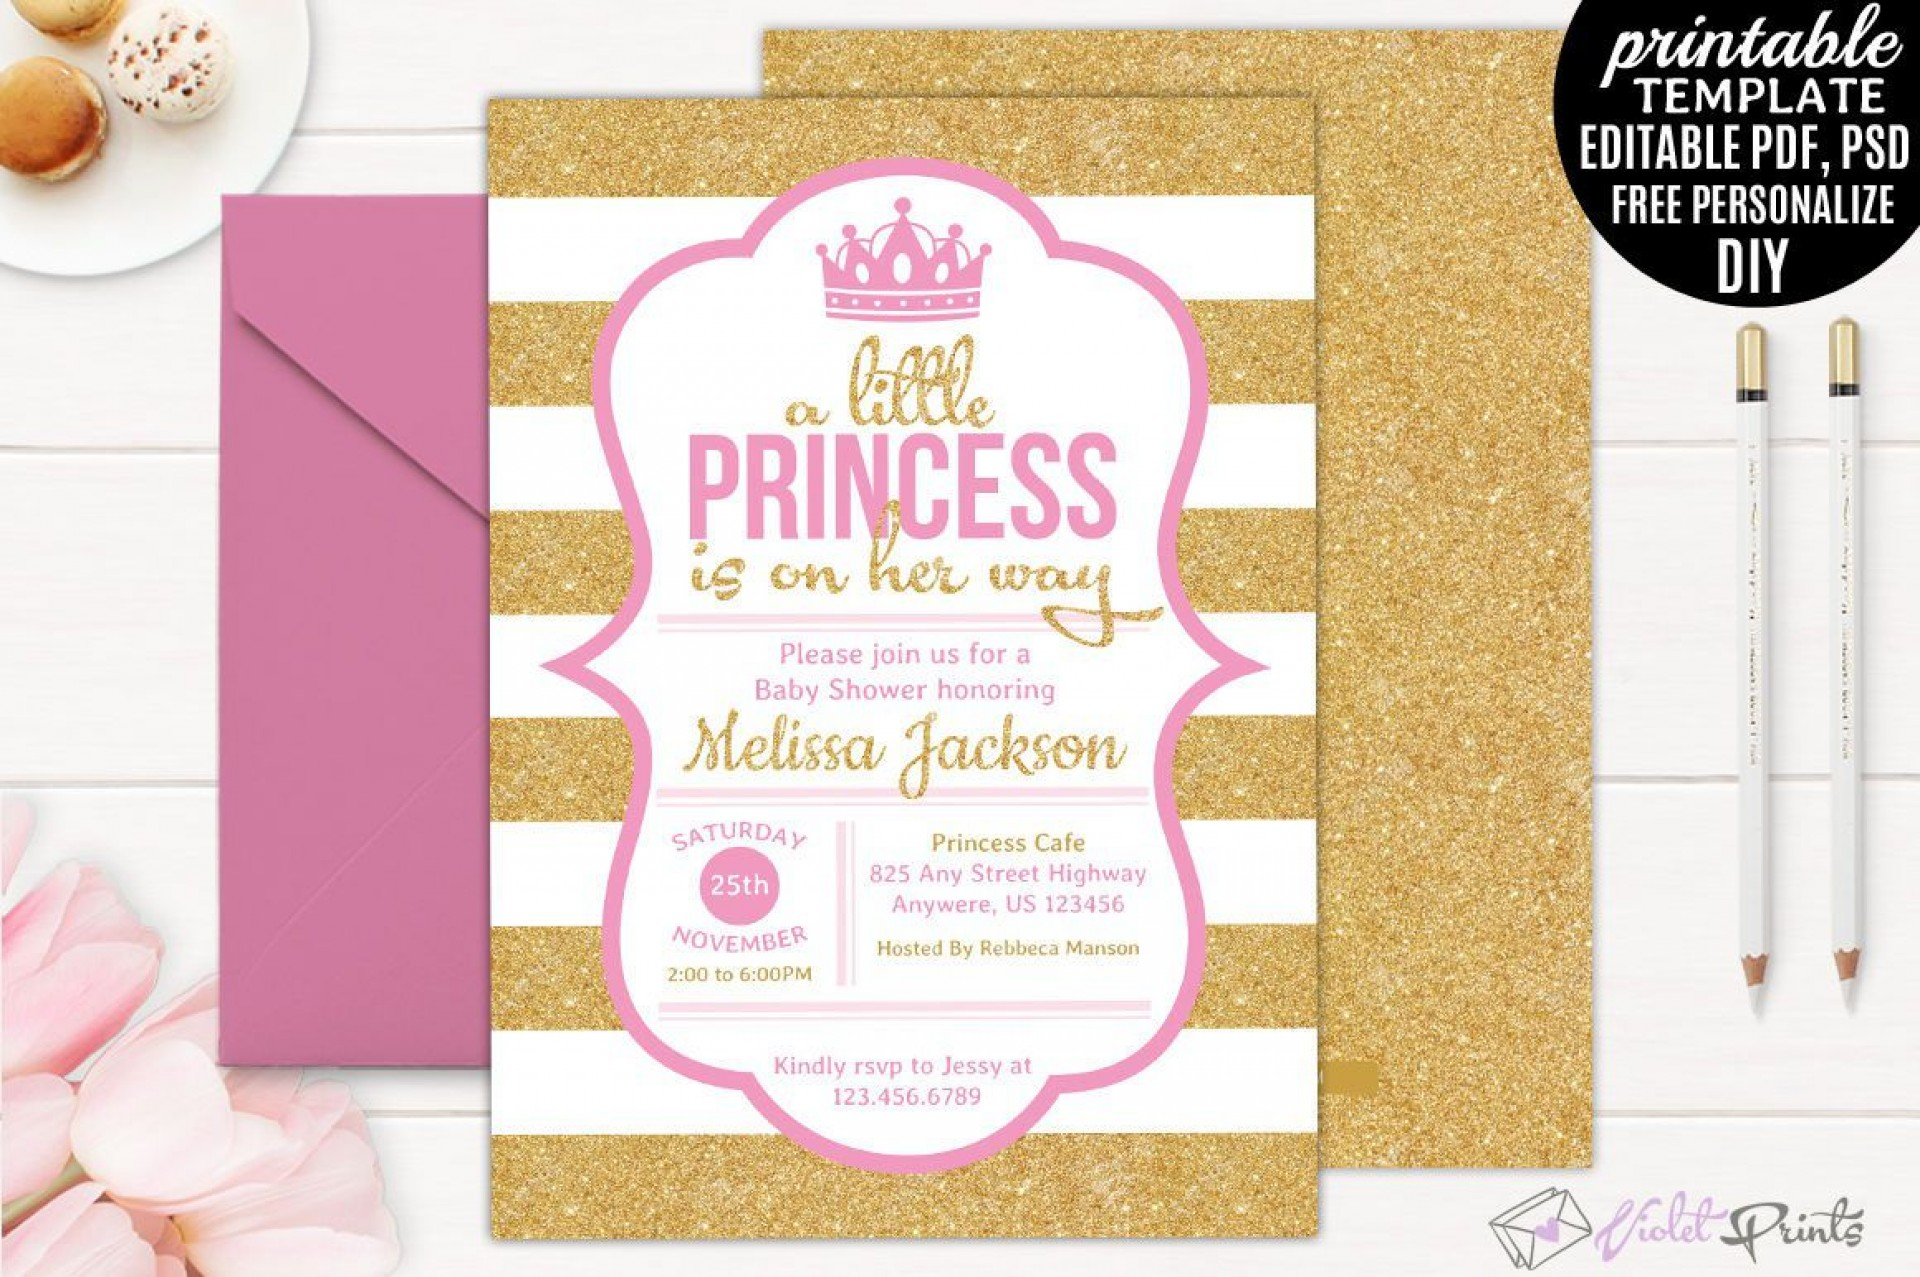 005 Rare Princes Baby Shower Invitation Template Highest Quality  Templates Little Royal Red Disney1920